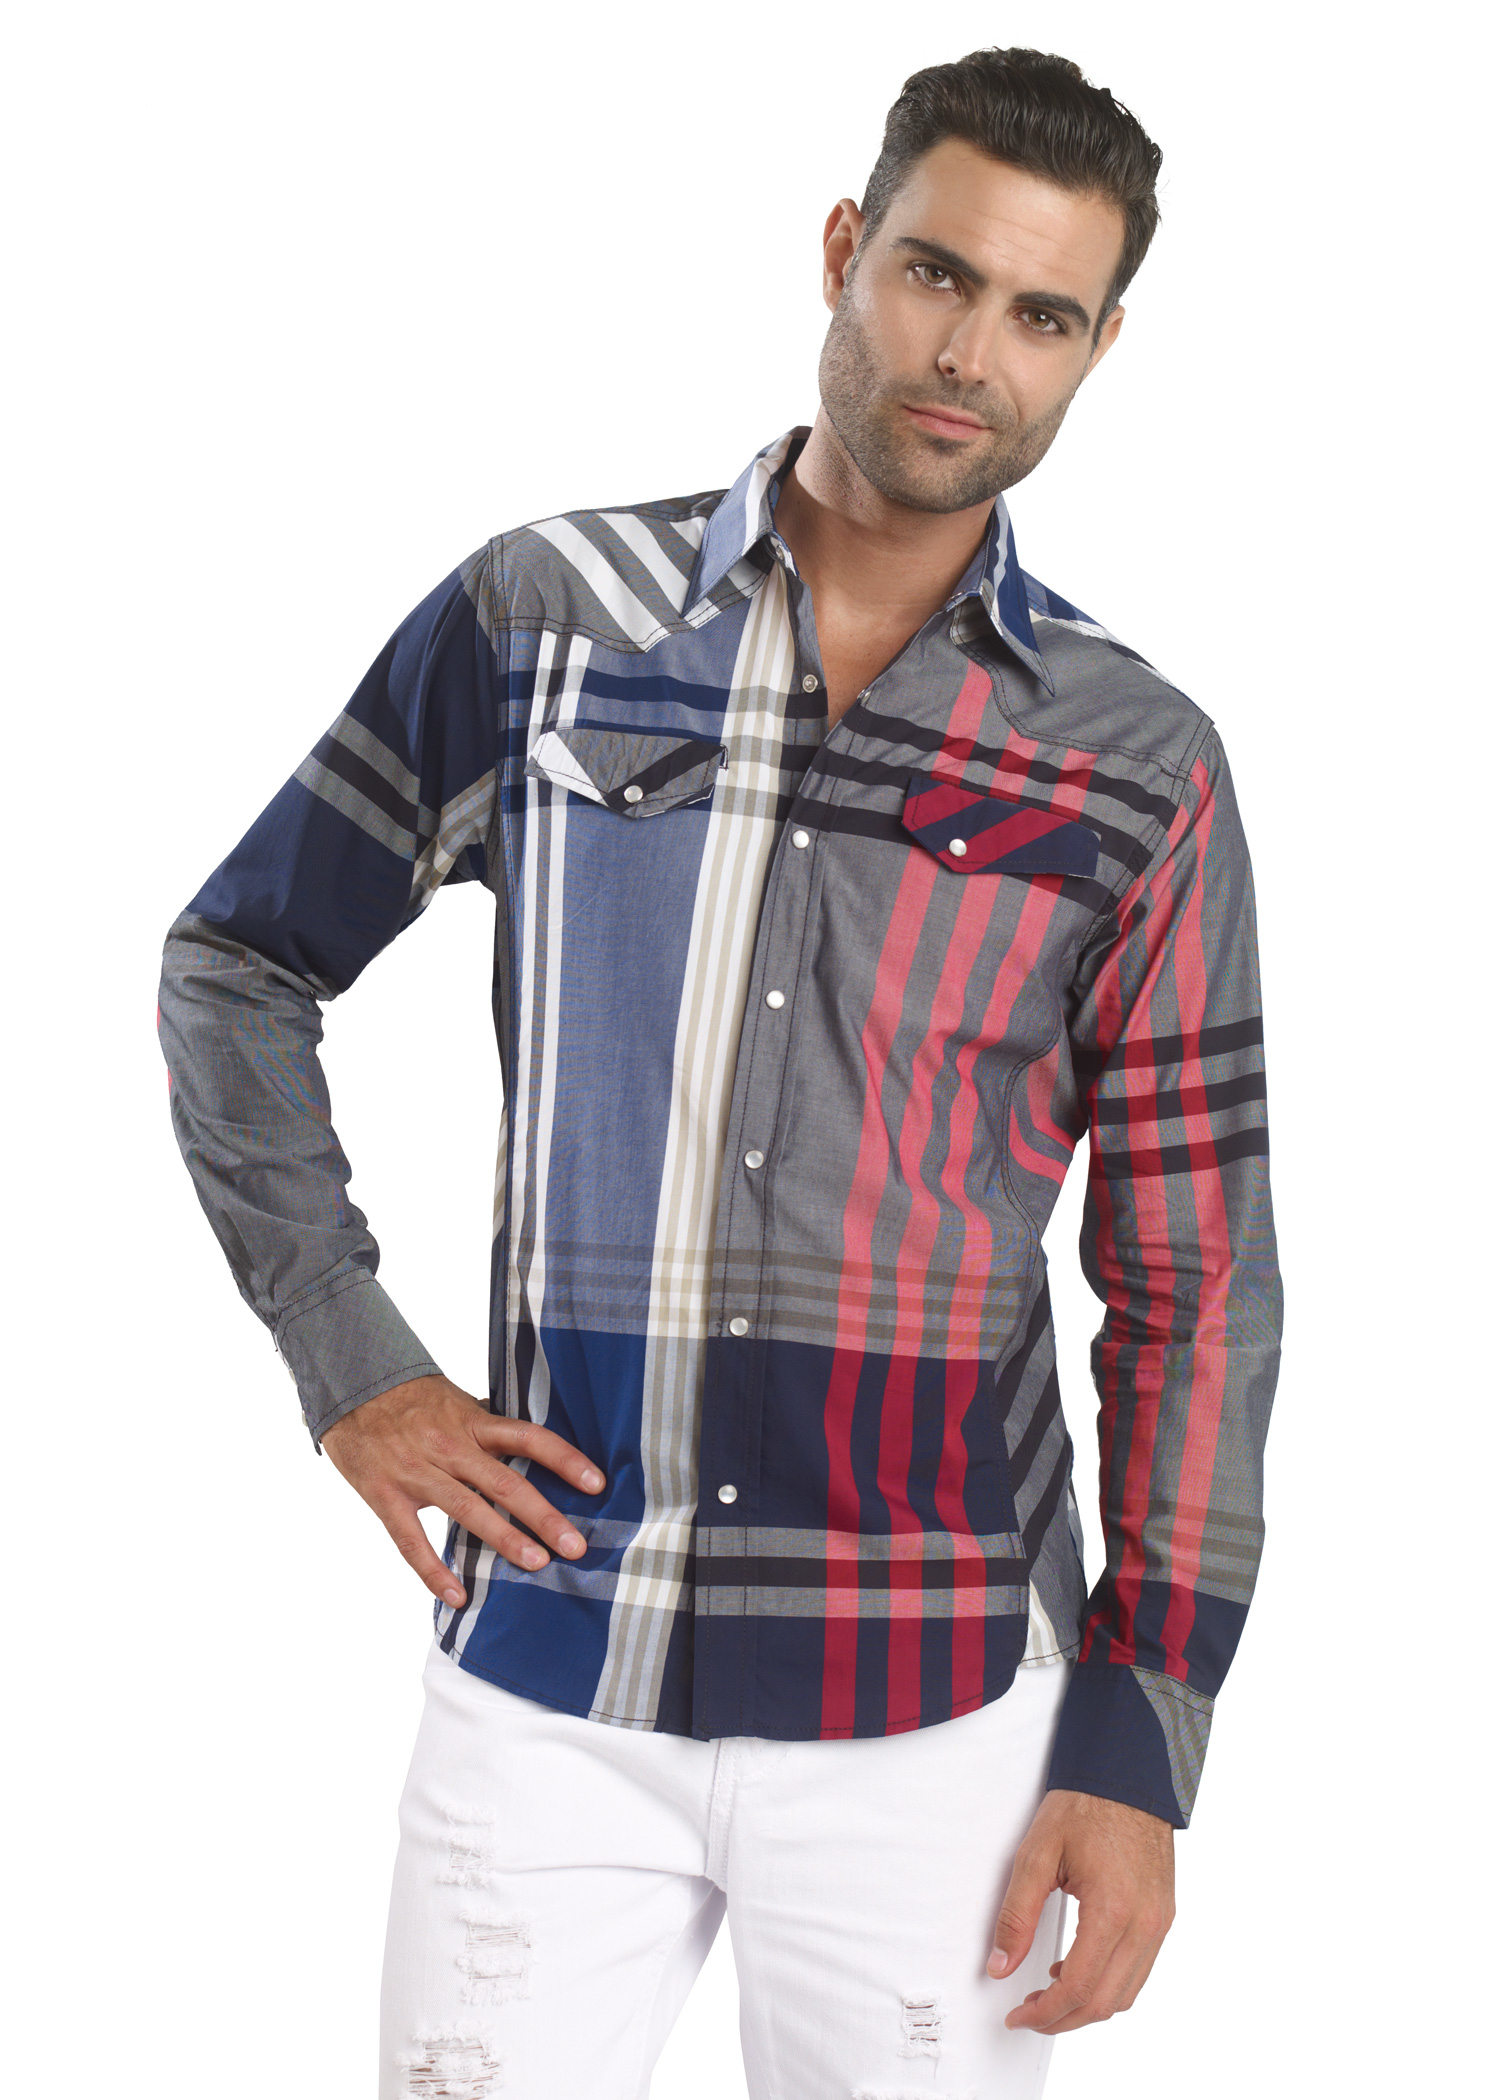 Wholesale Clothing Distributors In Los Angeles